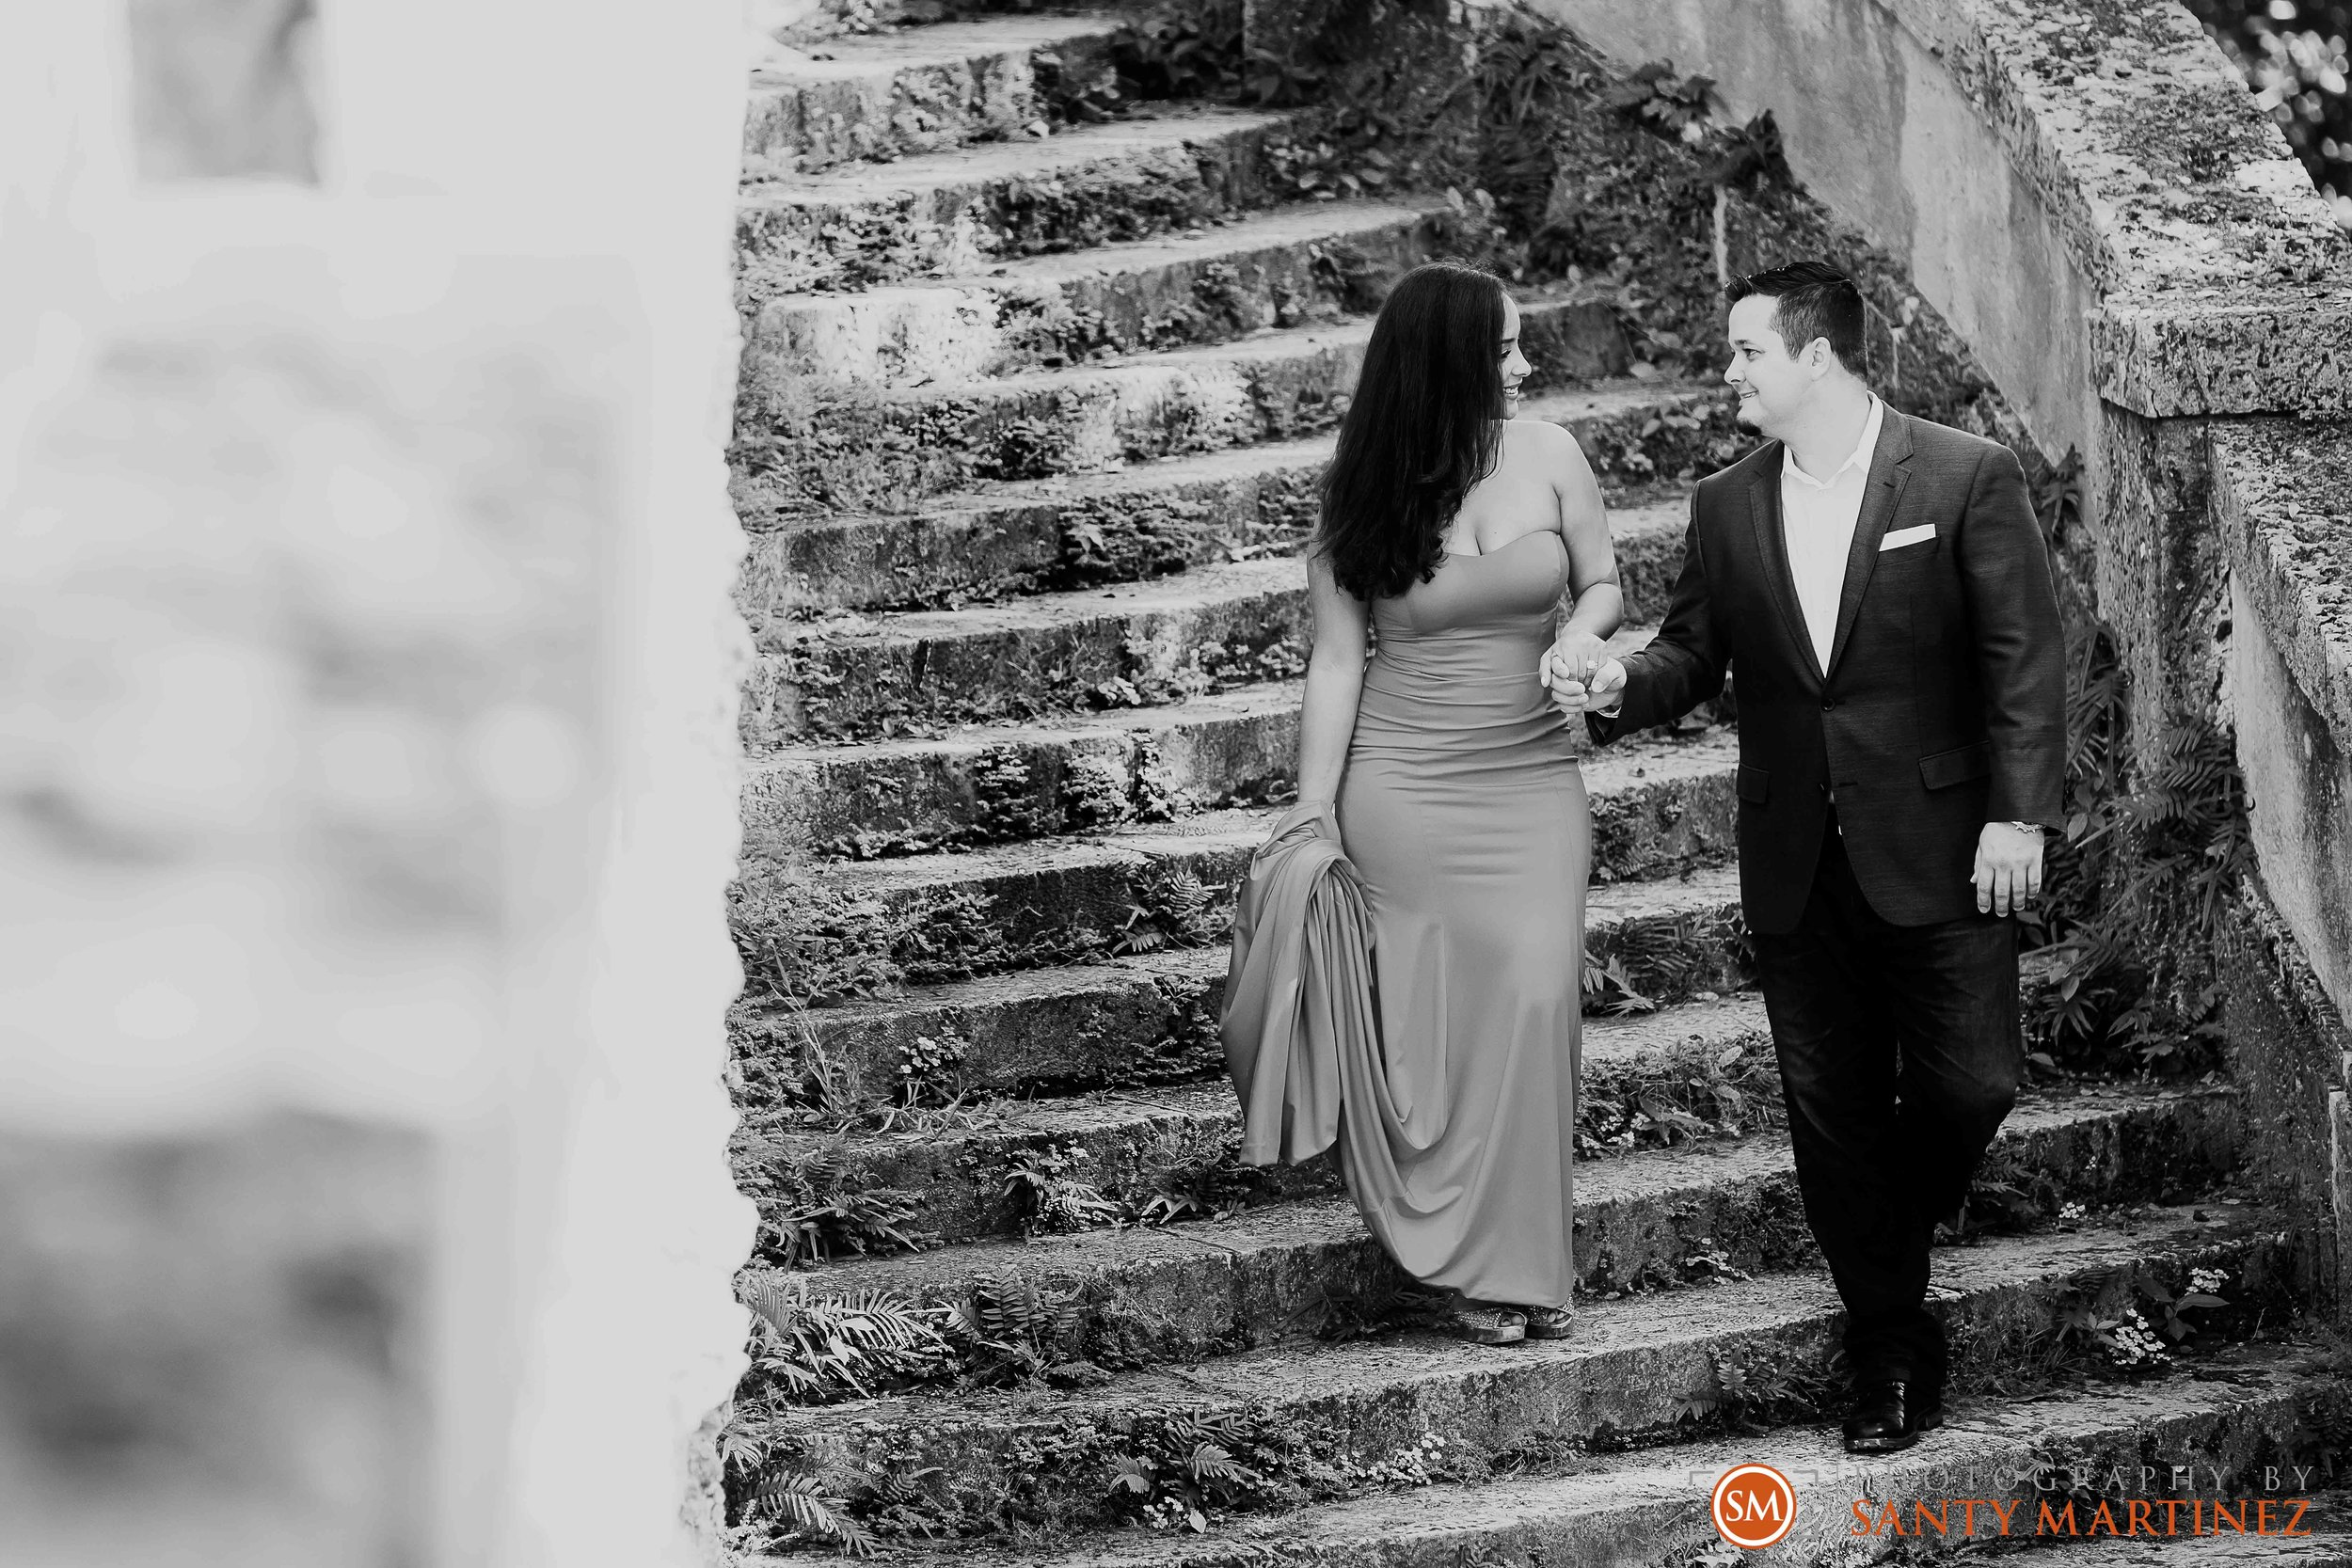 Vizcaya Engagement Session - Photography by Santy Martinez-4.jpg